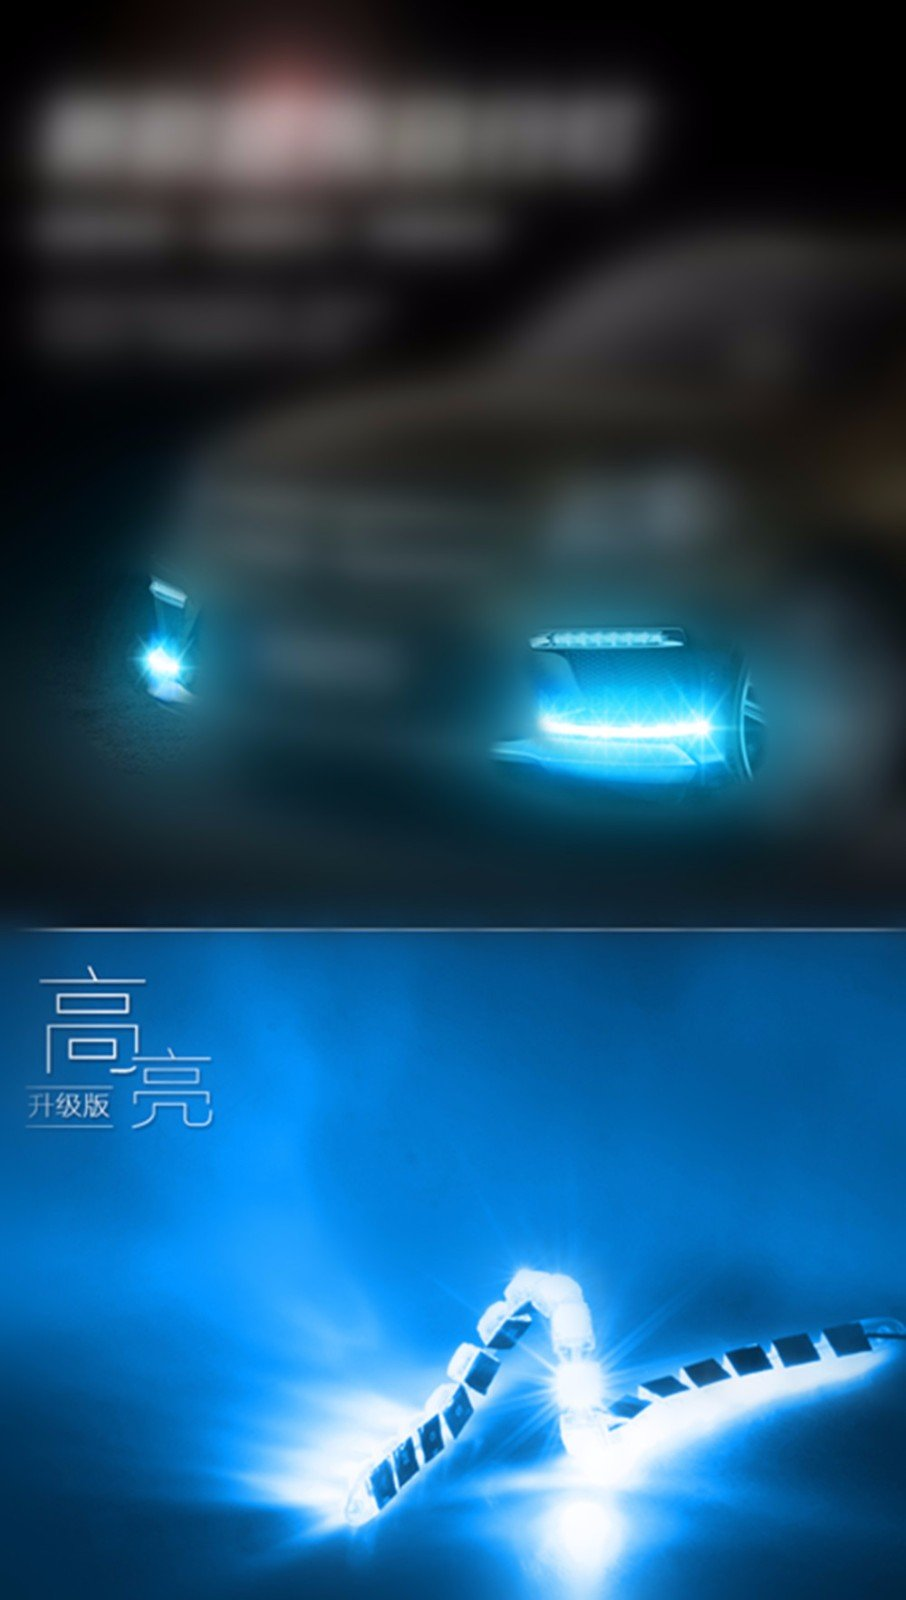 Xiaojiejie The New Day light car LED waterproof high power refit super bright bending daytime running lamp, vehicle exterior lamp general purpose,White -20